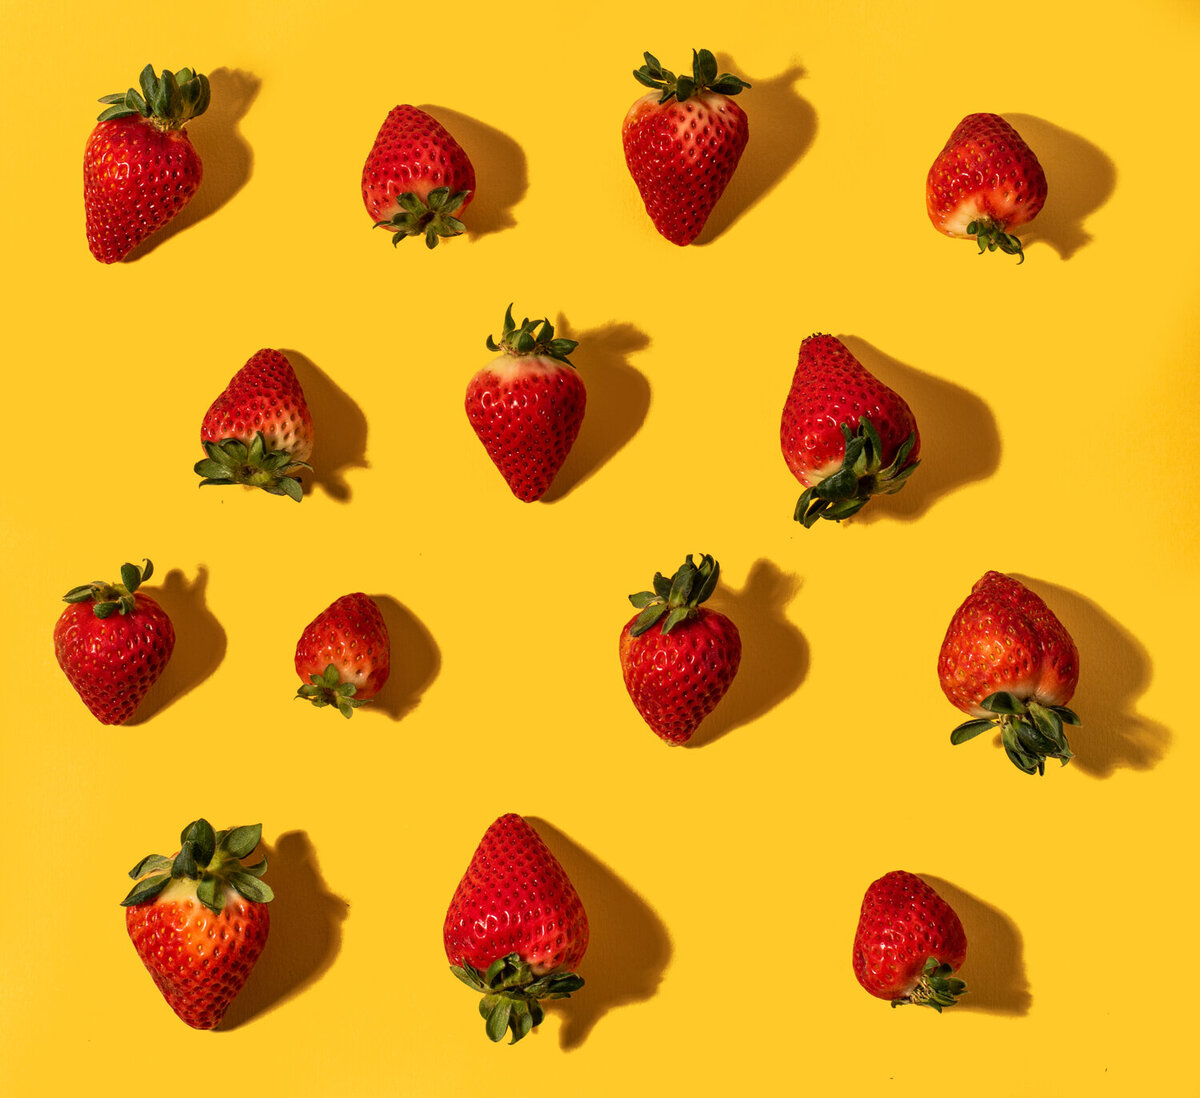 tiled strawberries on yellow